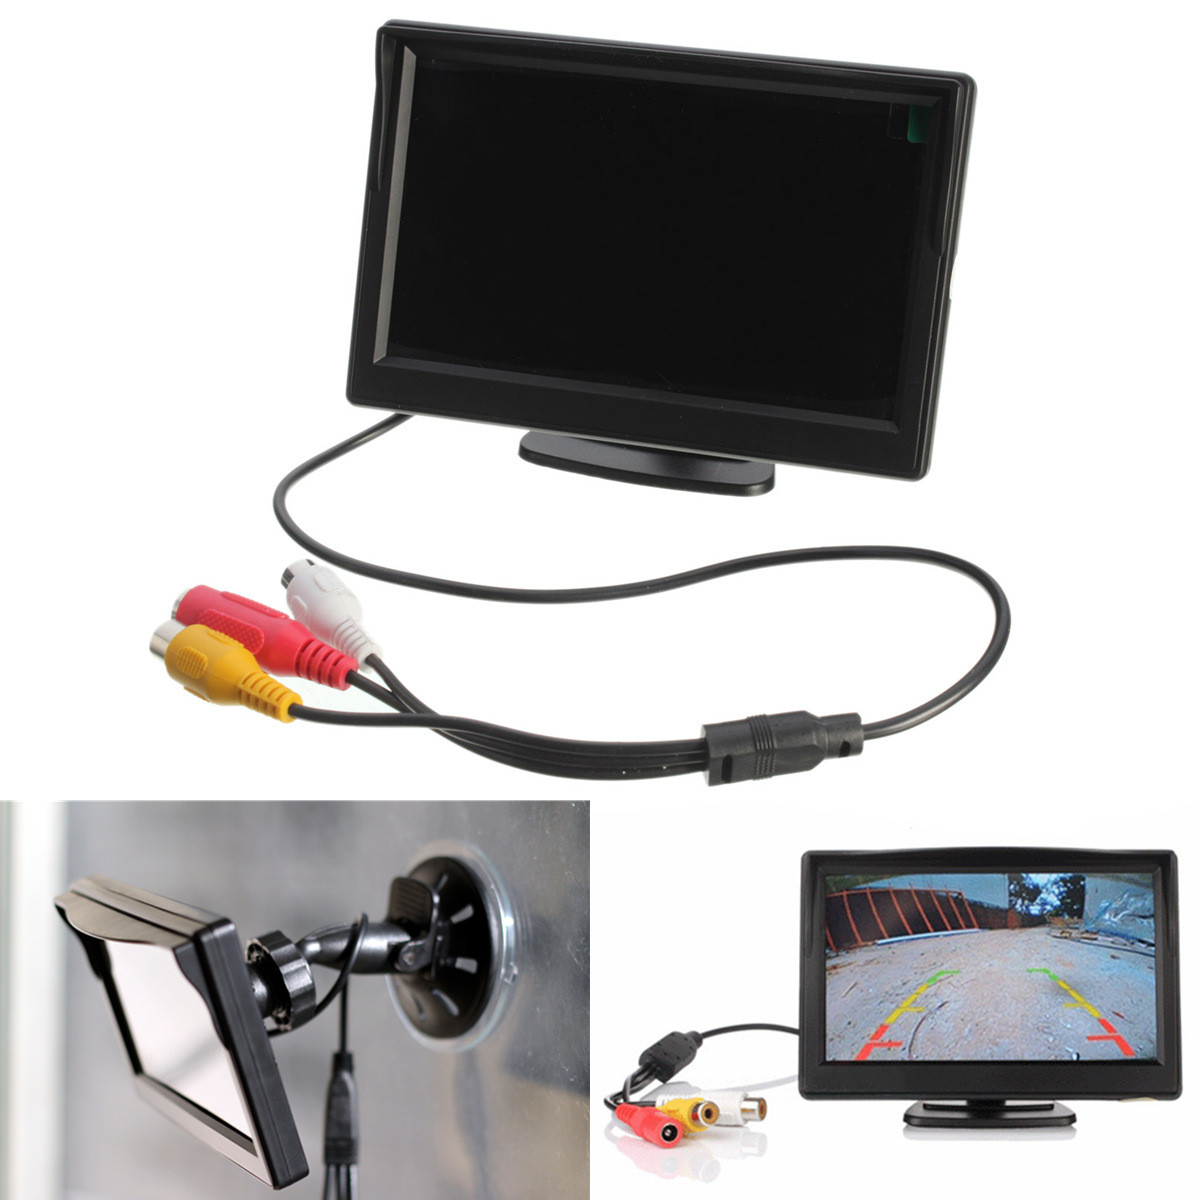 5 inch tft lcd car rear view rearview monitor with stand. Black Bedroom Furniture Sets. Home Design Ideas